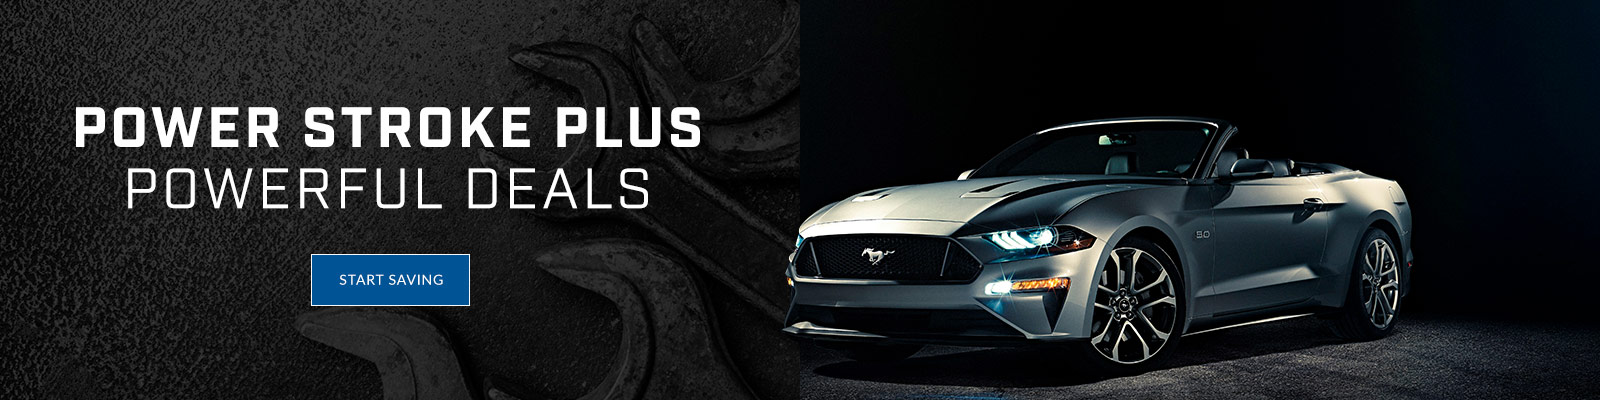 Genuine Mustang Parts and Accessories